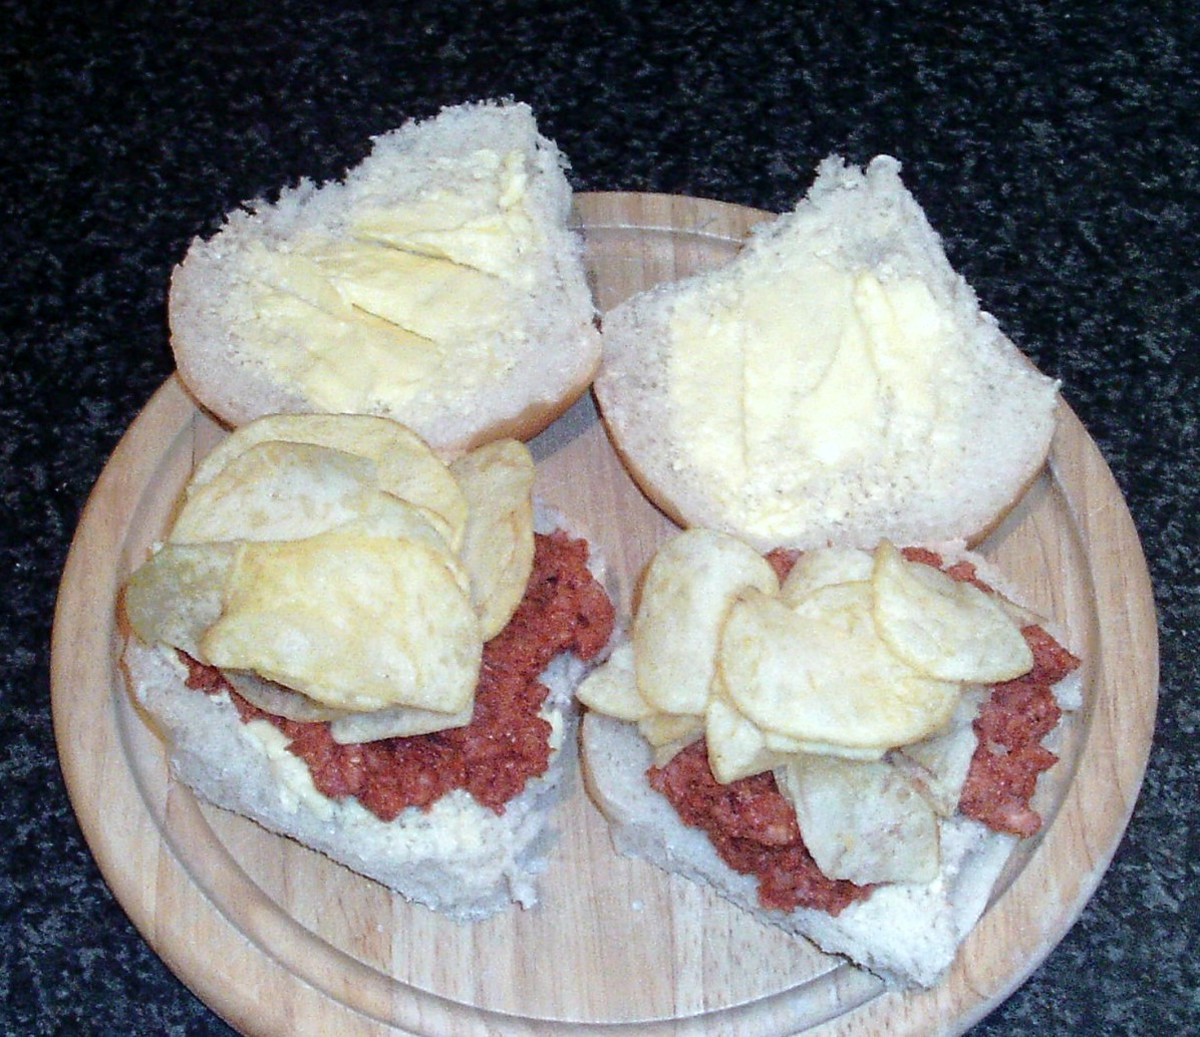 Salt and vinegar crisps on spicy tomato corned beef